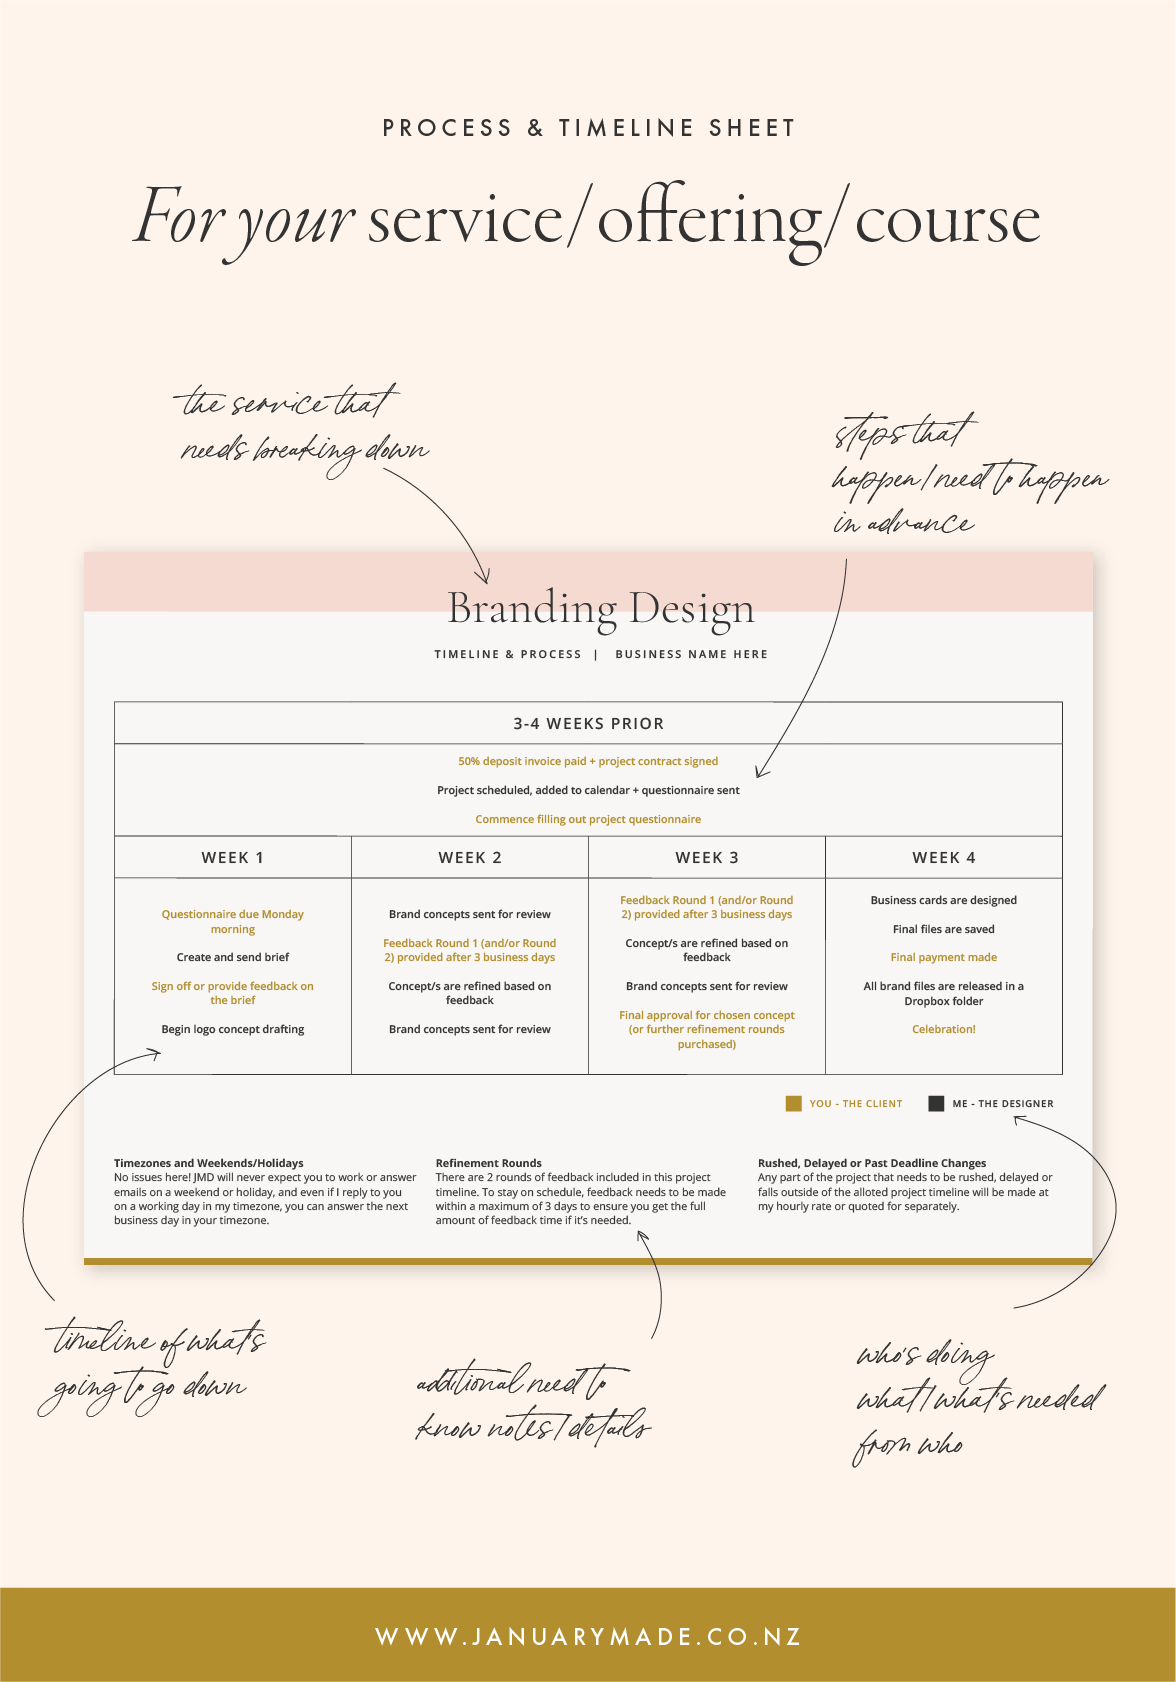 Timeline and Process breakdown sheet for your business